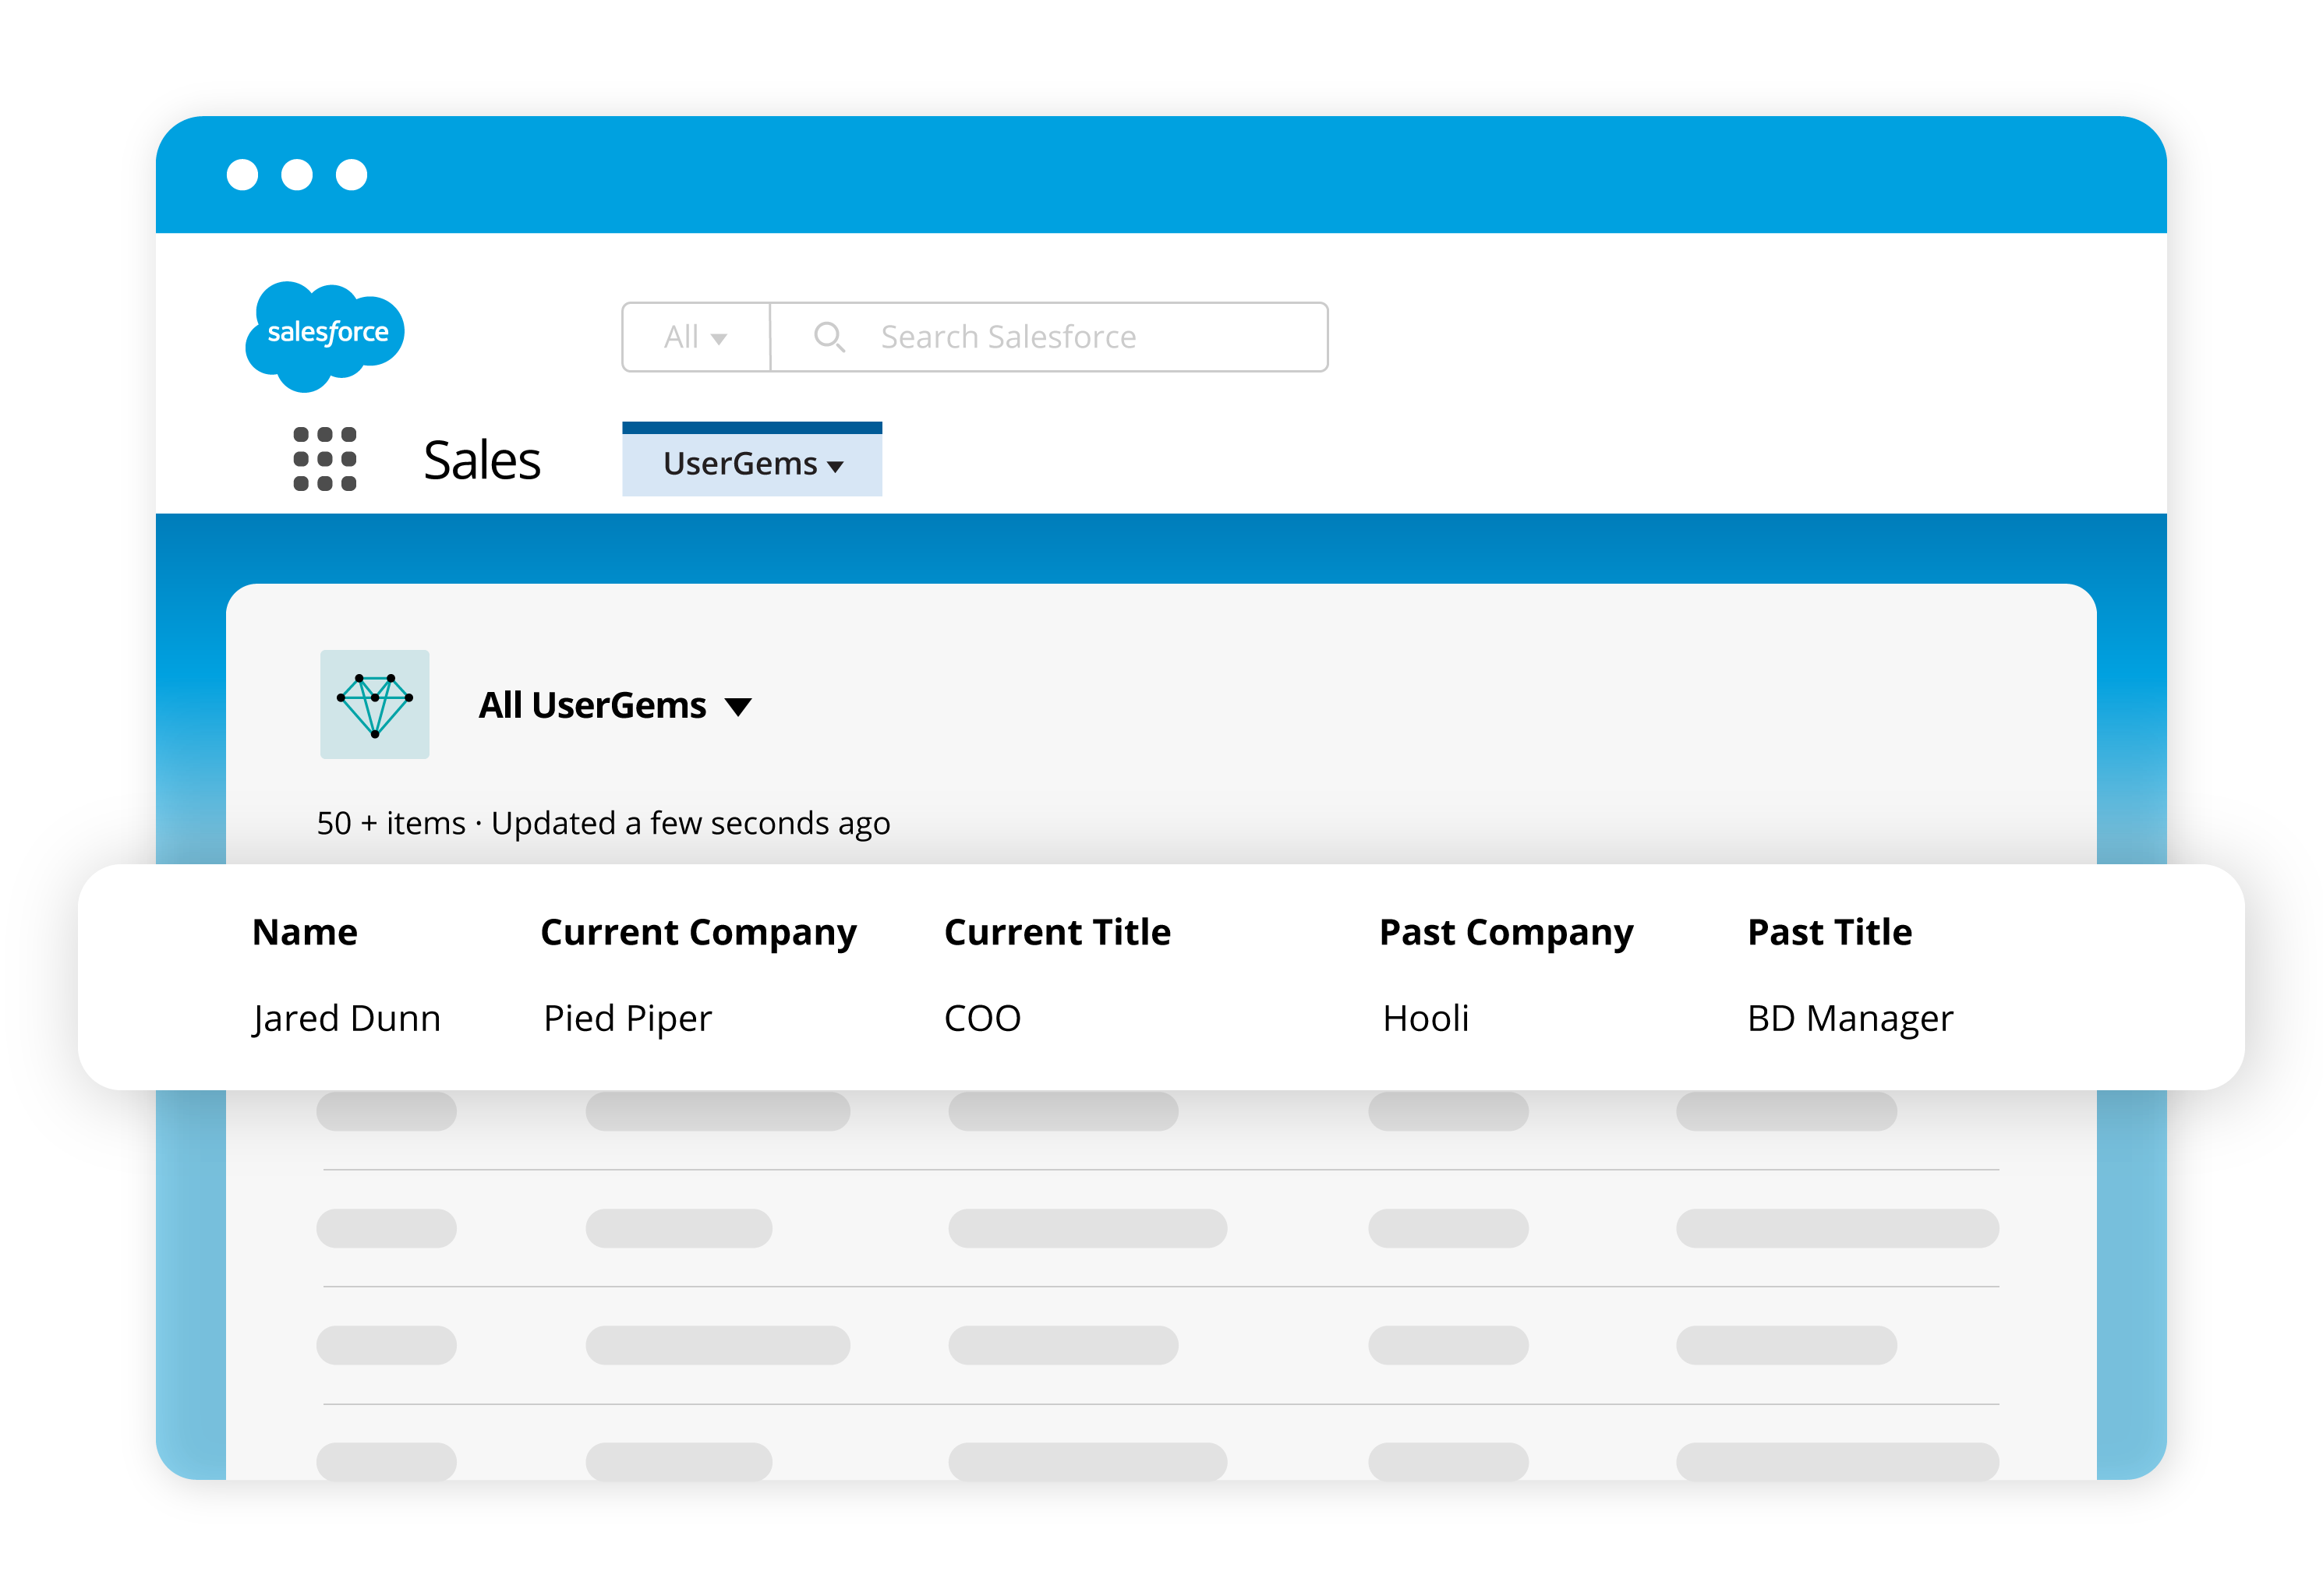 UserGems lead list in Salesforce